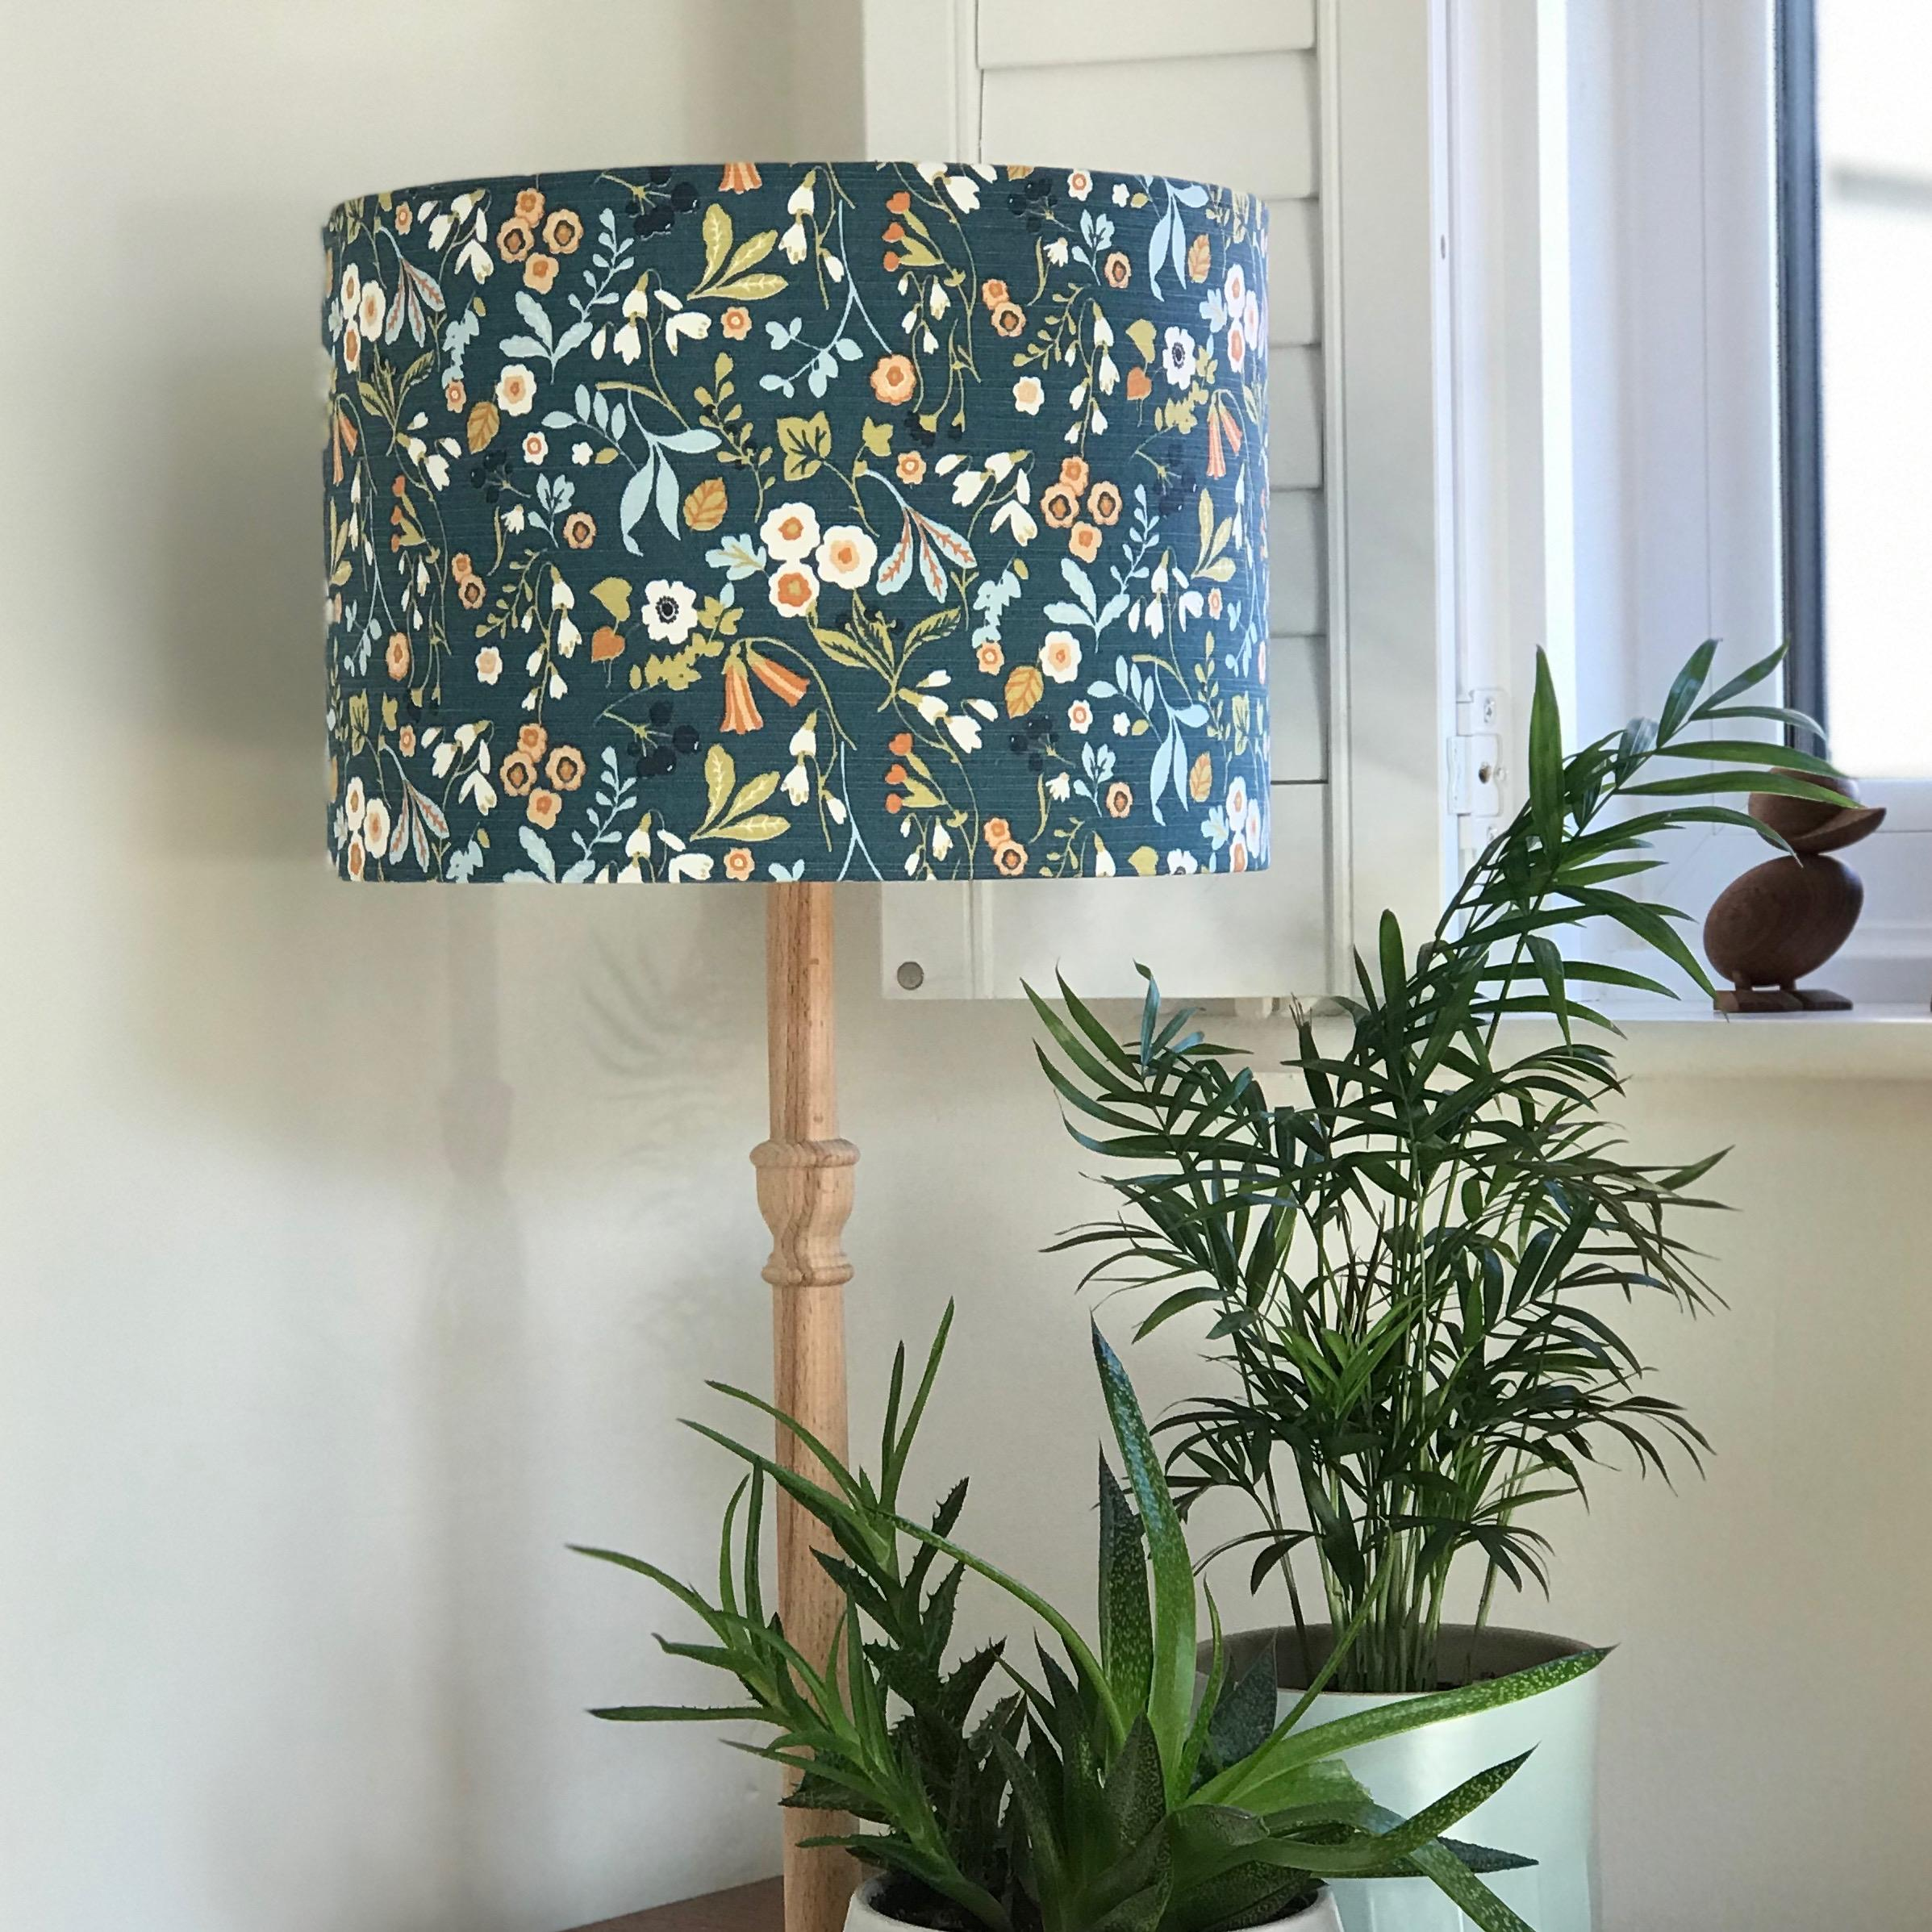 Lampshades for the home